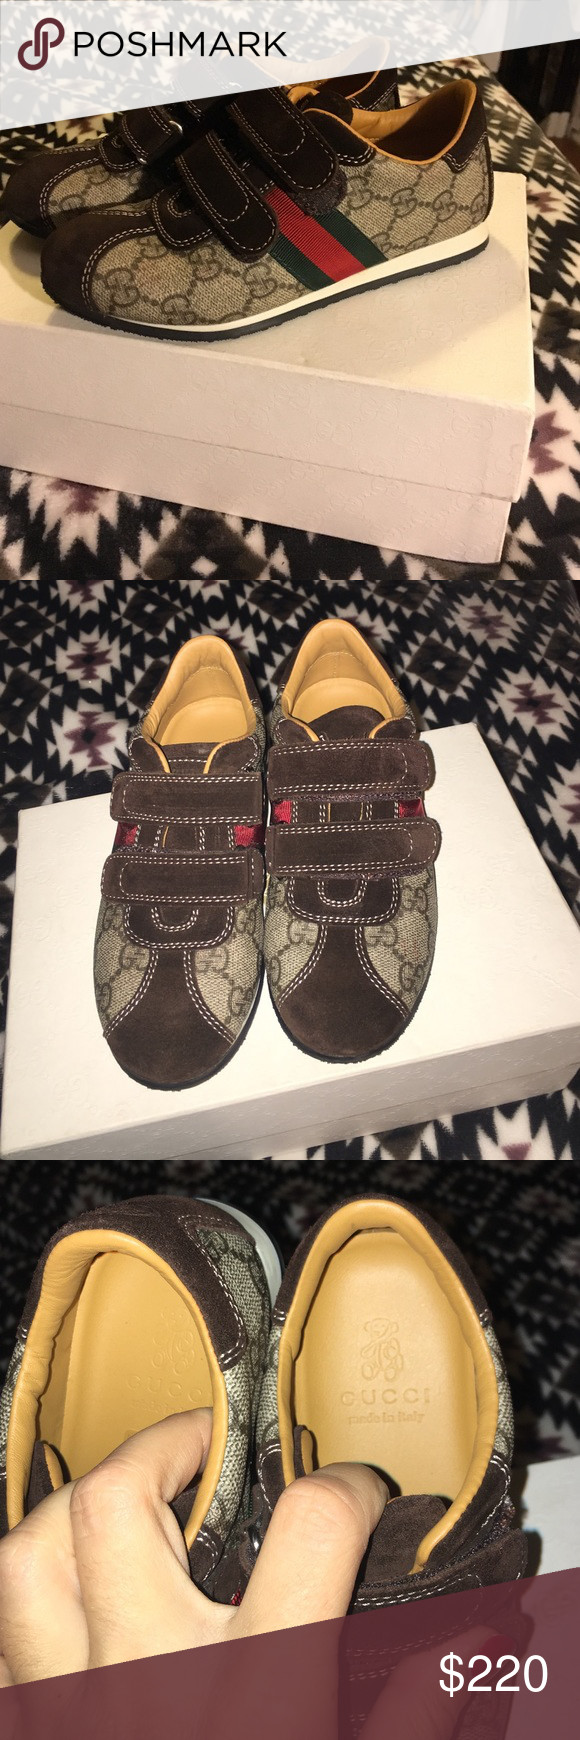 962c9d78d New Authentic Gucci kids shoes sz 29 Brand new in box. Never worn. Gucci  Shoes Sneakers